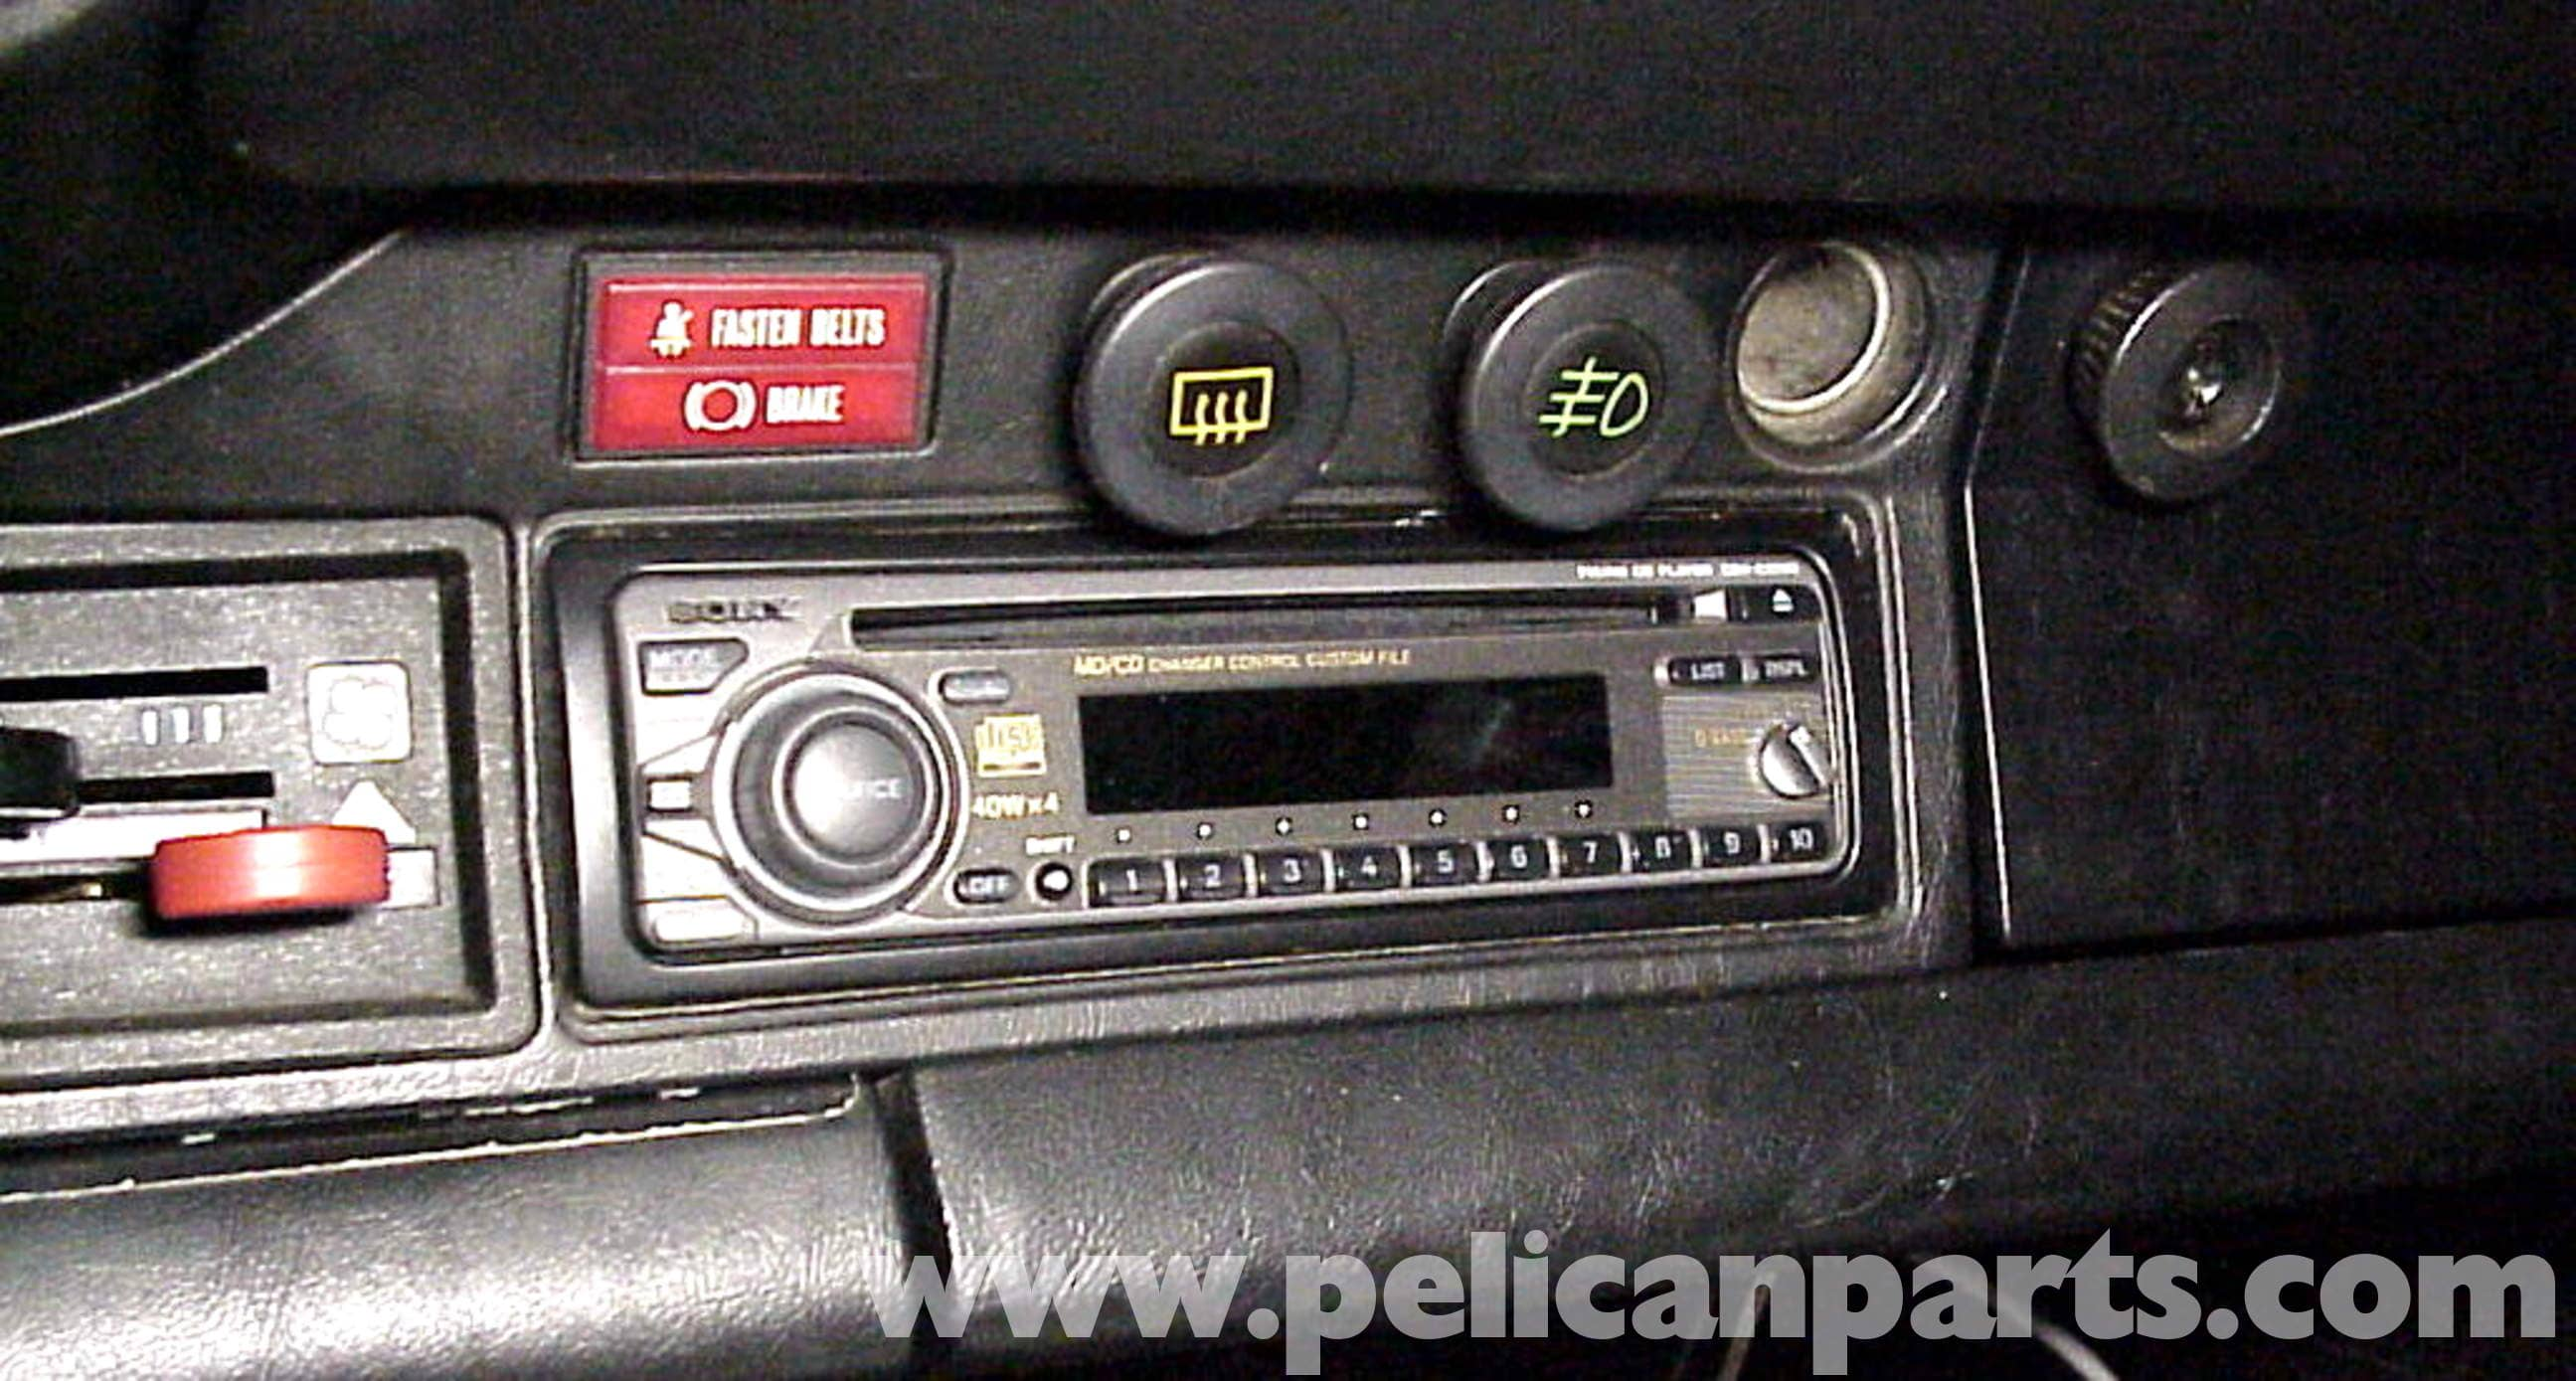 Porsche 911 Stereo Installation 1965 89 930 Turbo 1975 1978 Fuse Box Diagram Large Image Extra